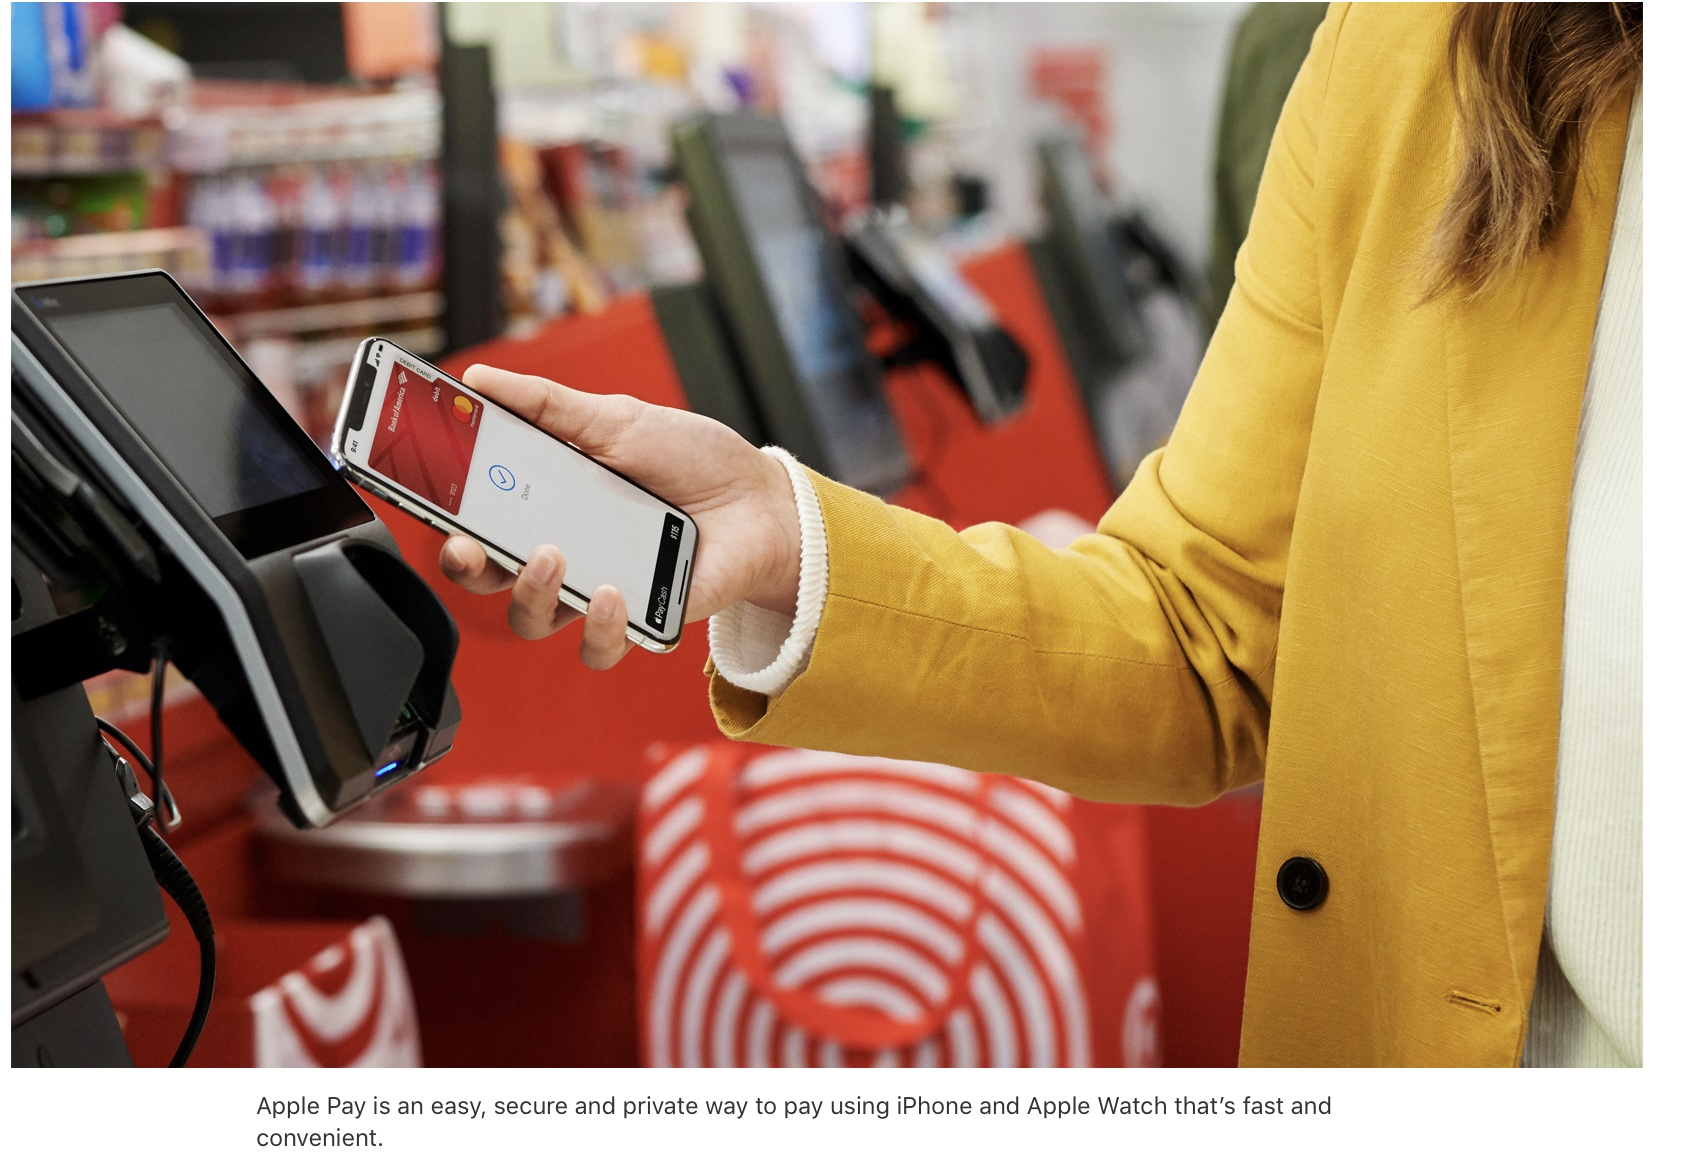 Apple Pay coming to Target, Taco Bell, more U.S. retail locations